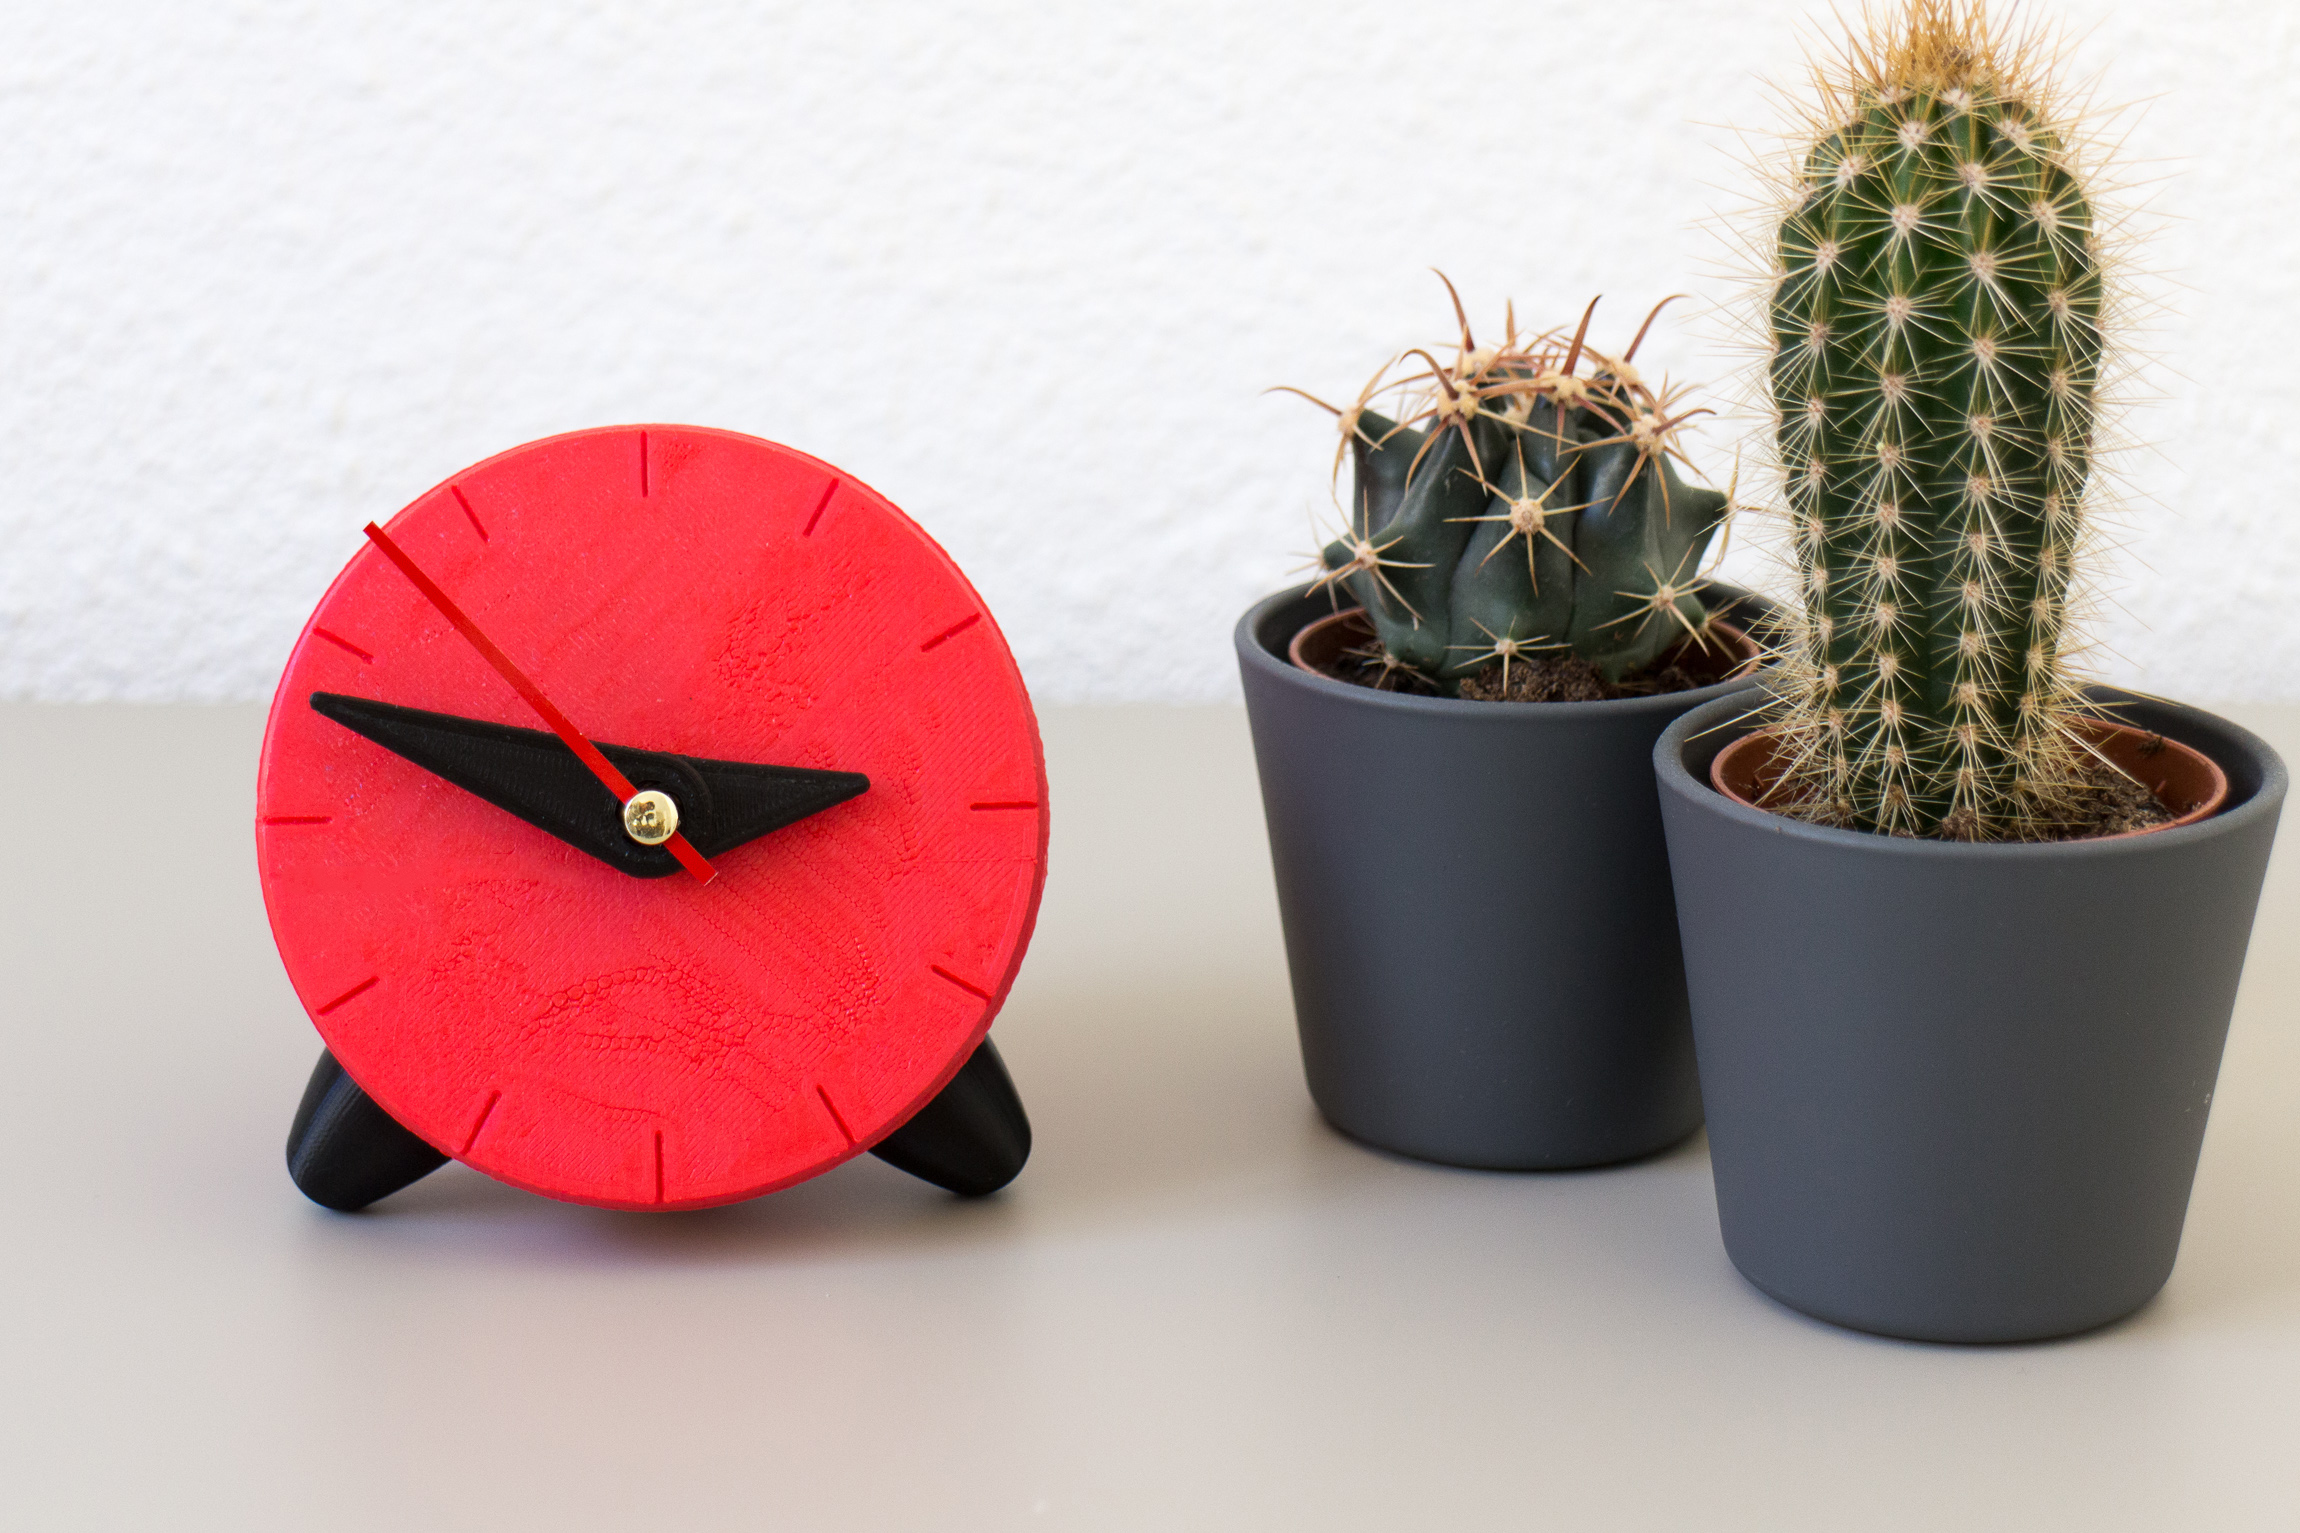 Red 3D printed clock